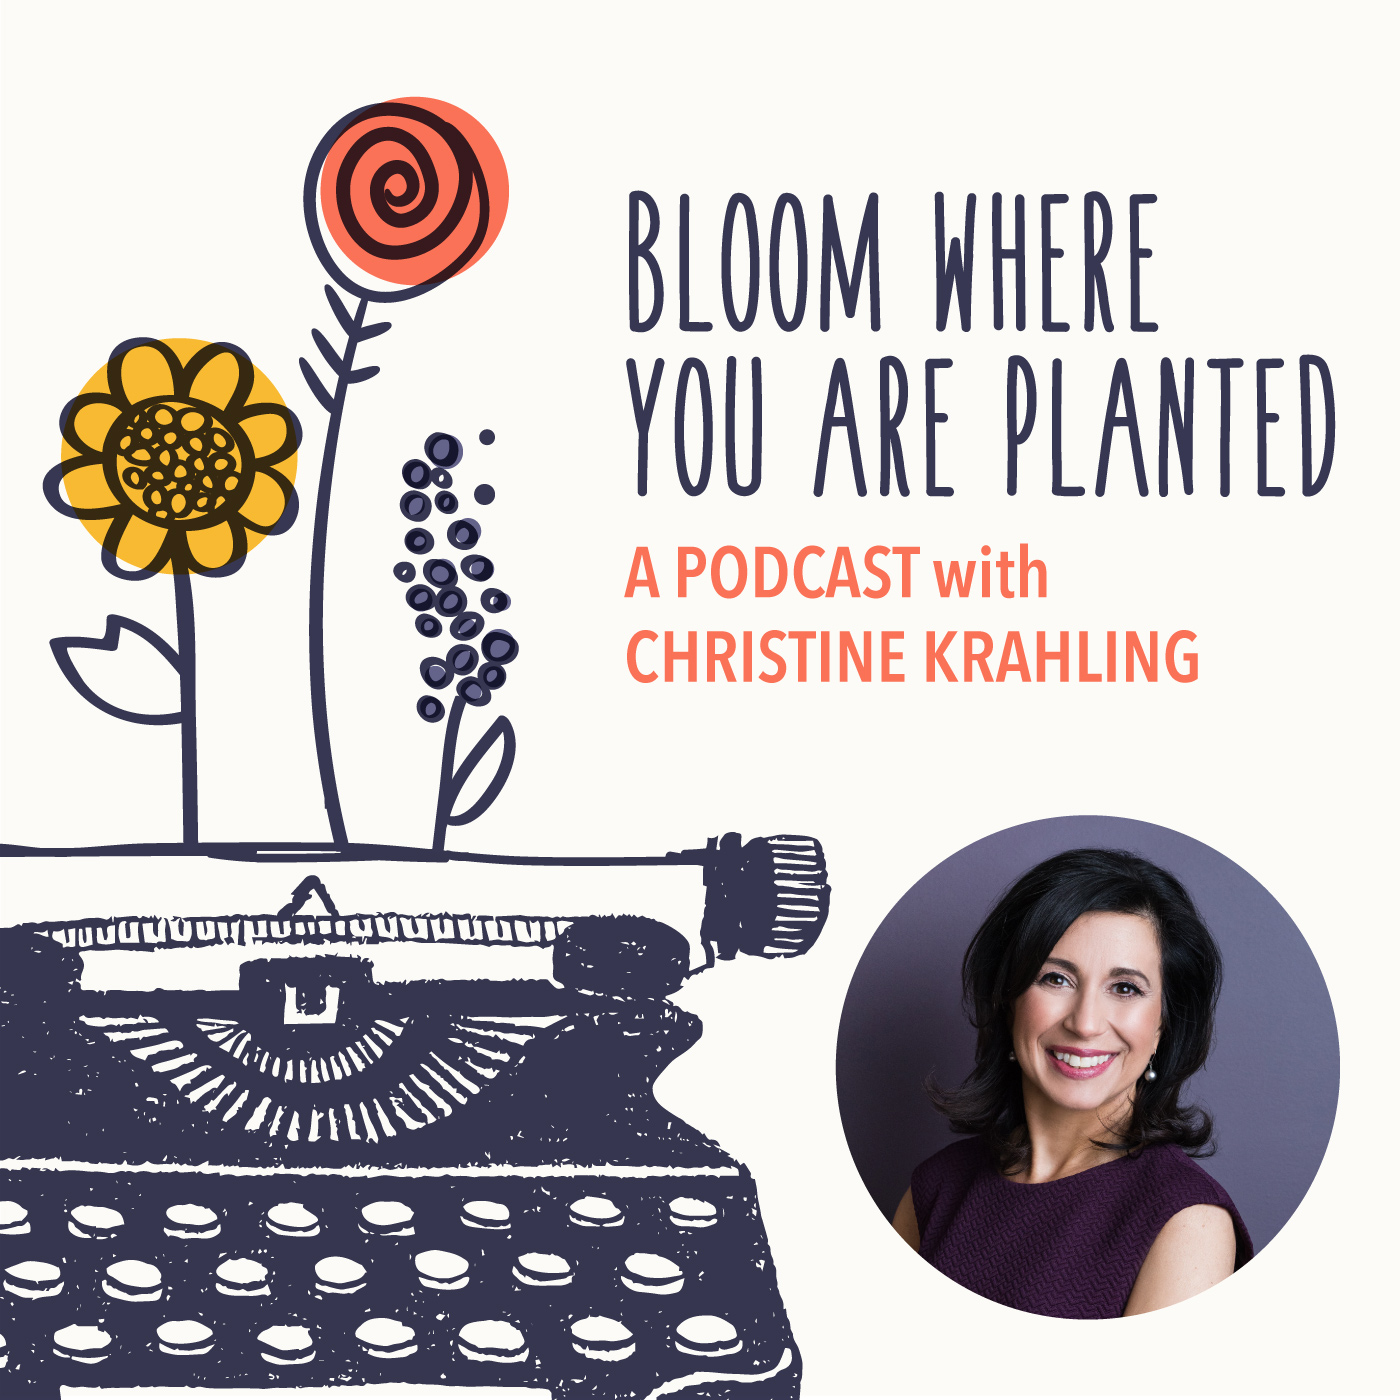 Bloom Where You Are Planted Podcast with Christine Krahling show art